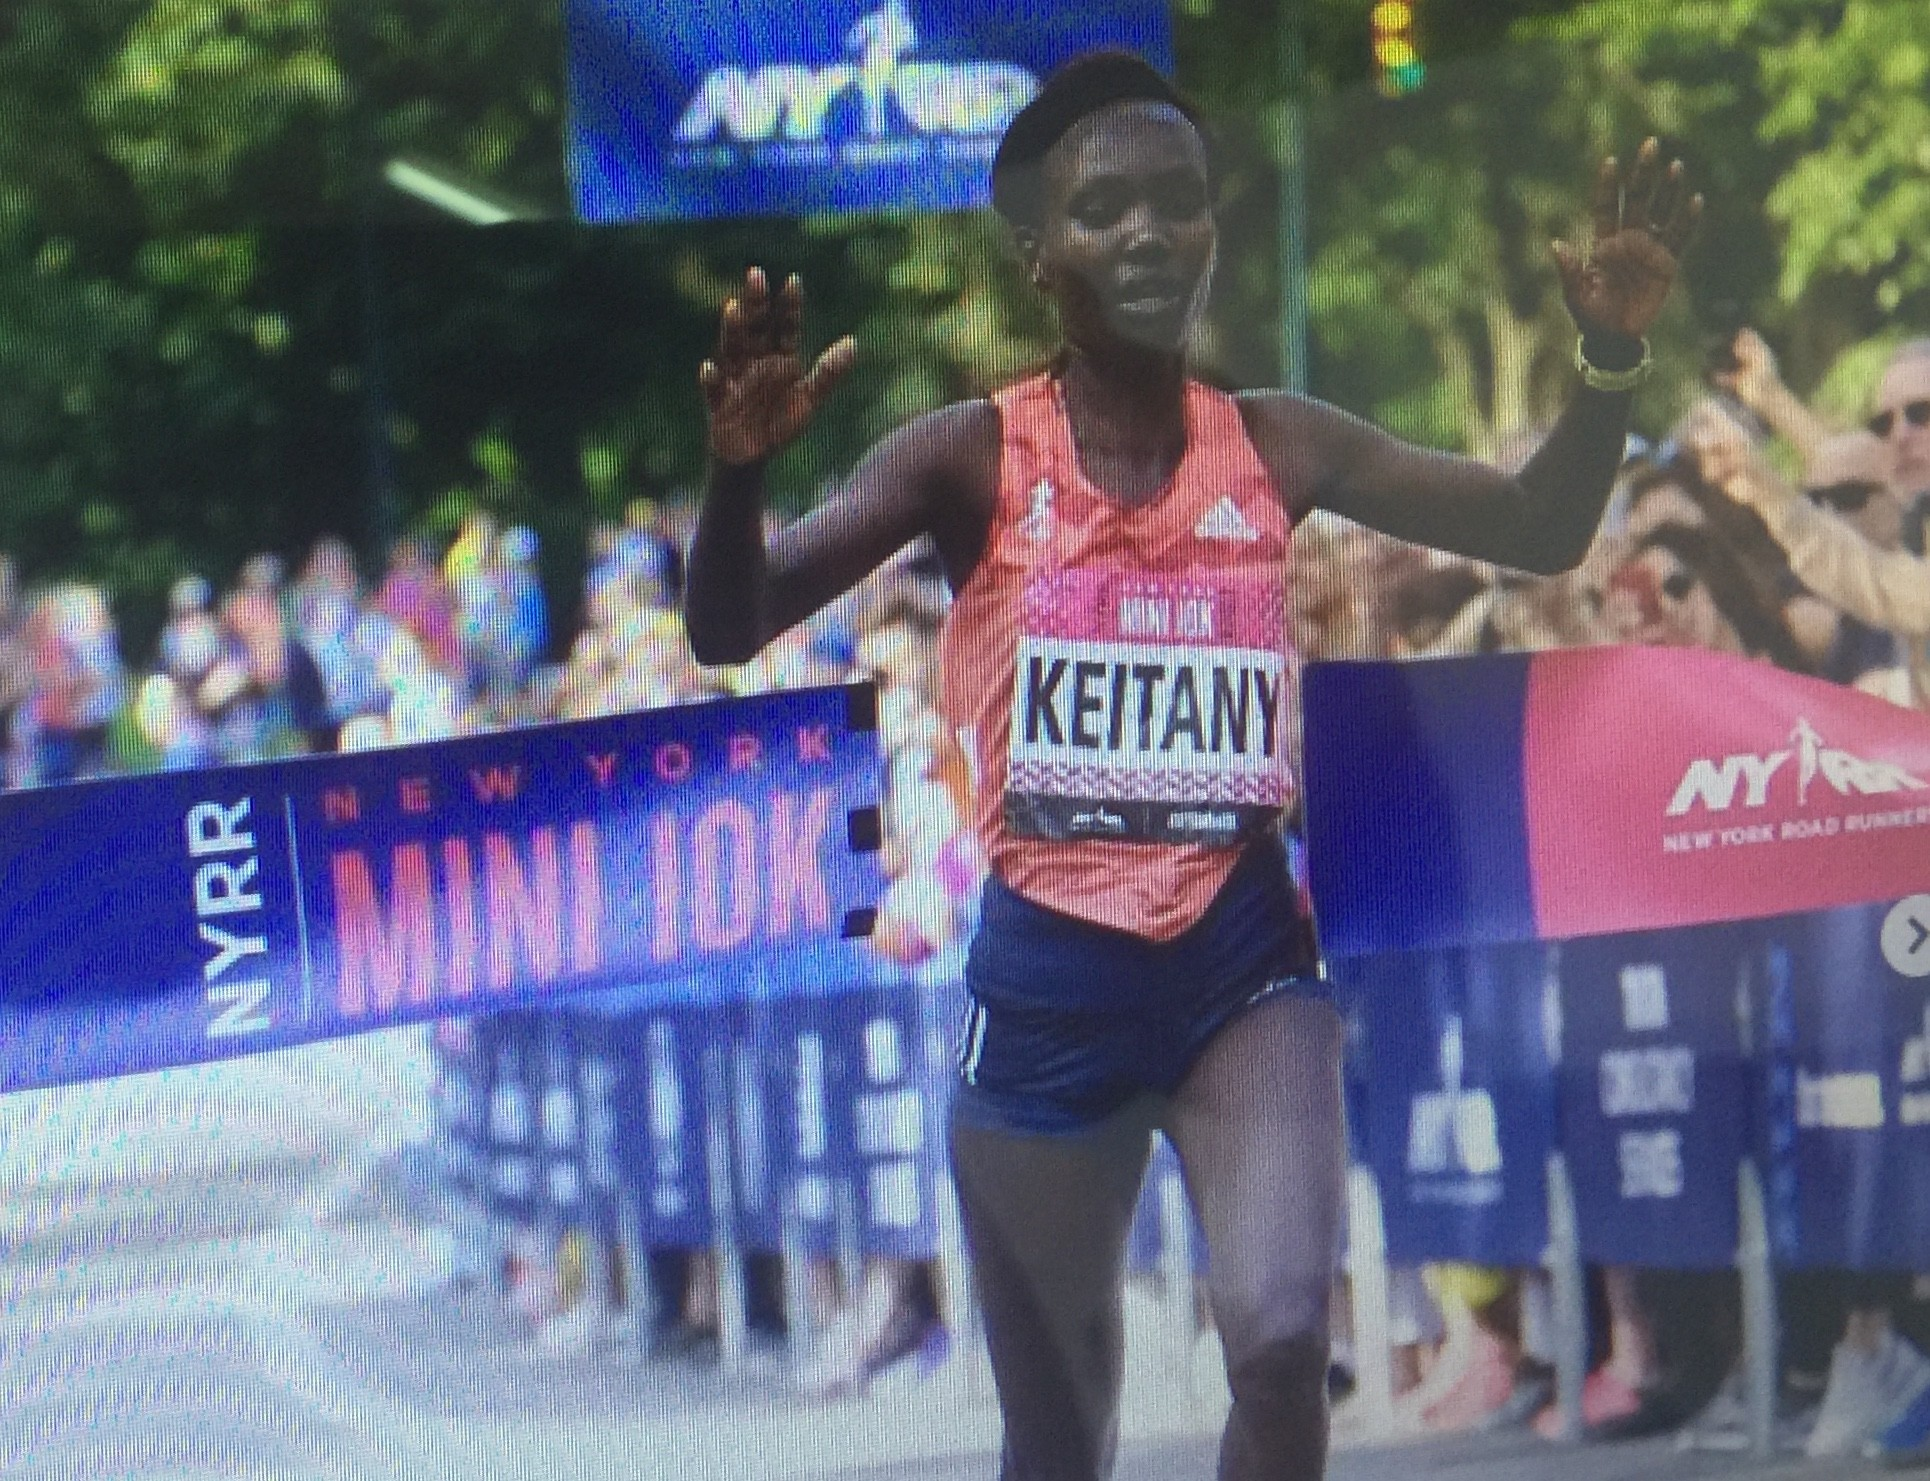 Mary Keitany win the NYRR New York Mini 10K by over one minute